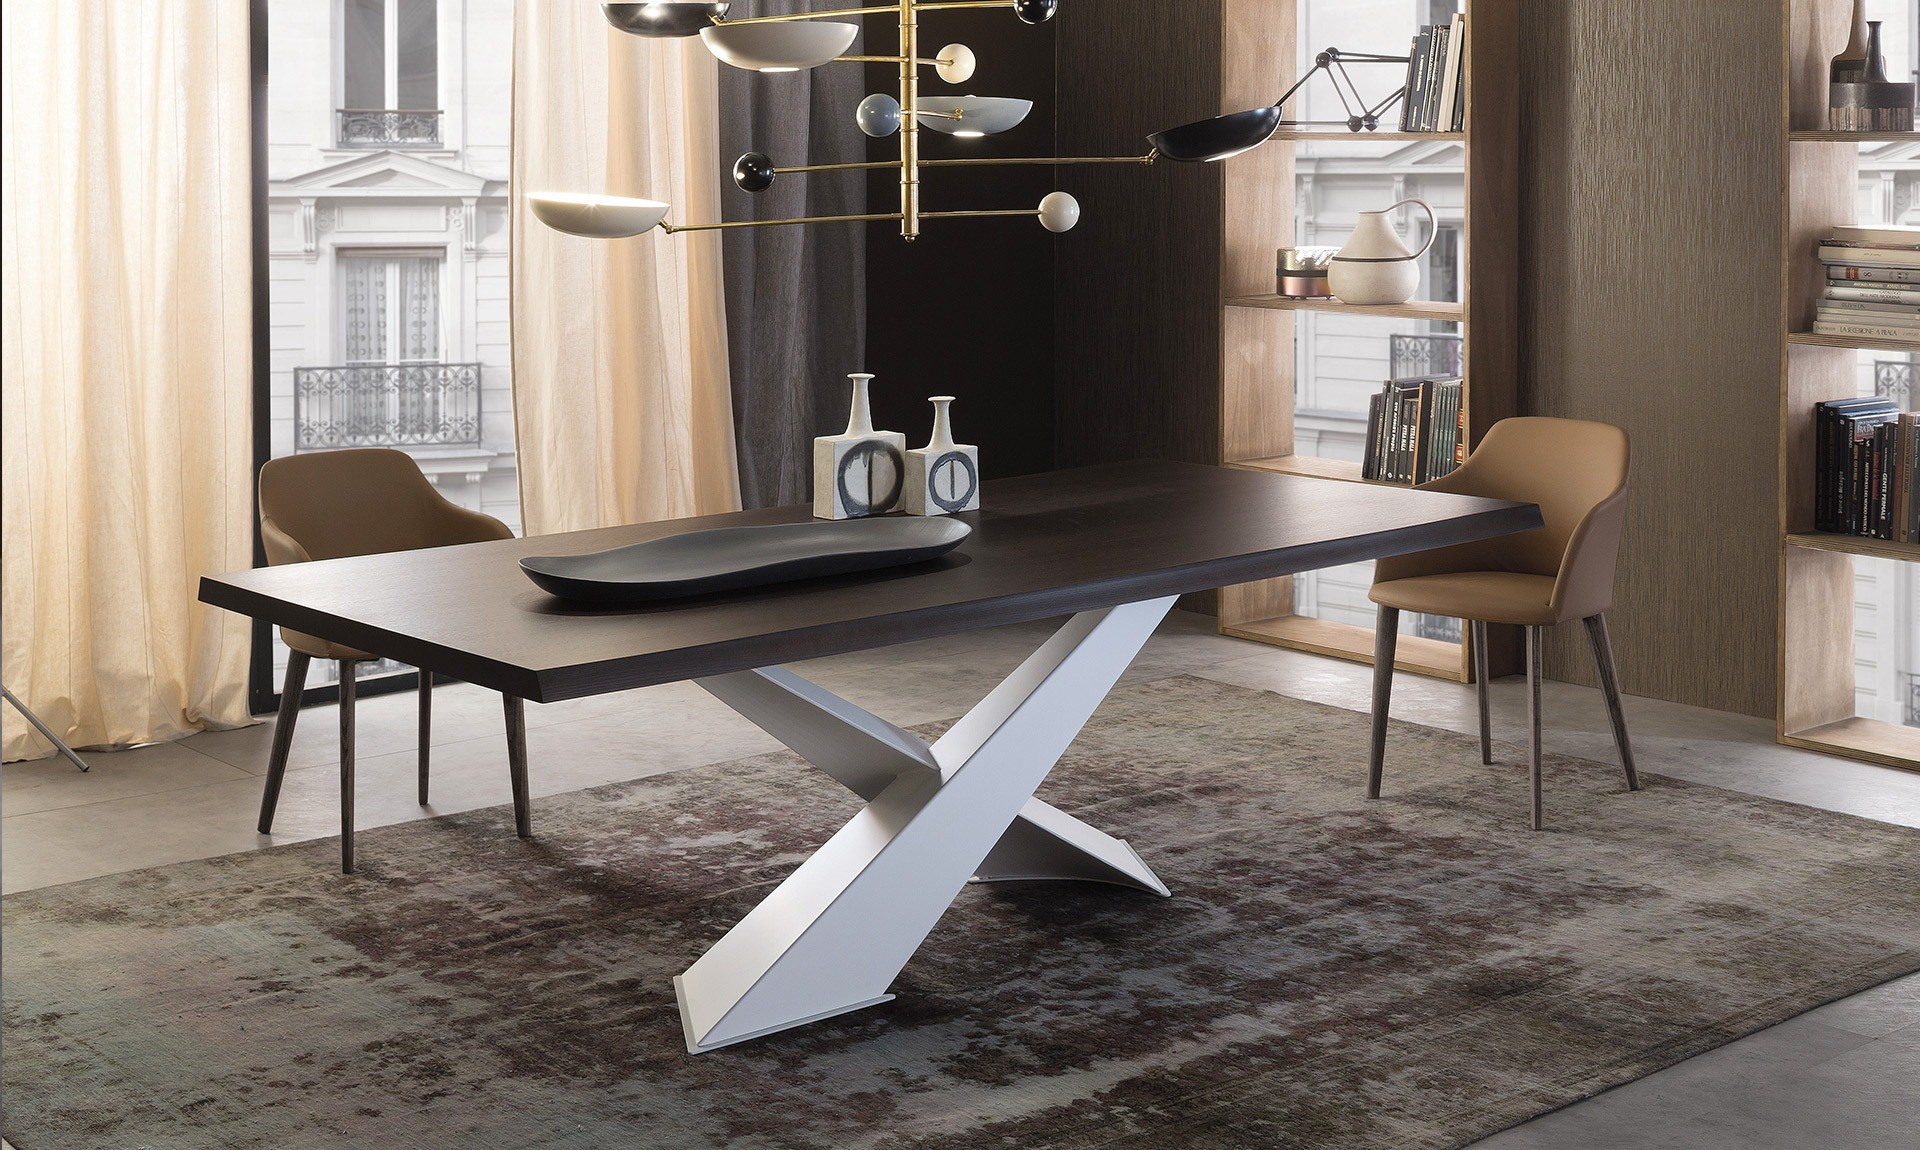 Limited Edition Italian Design dining table SHANGAI by Riflessi-03